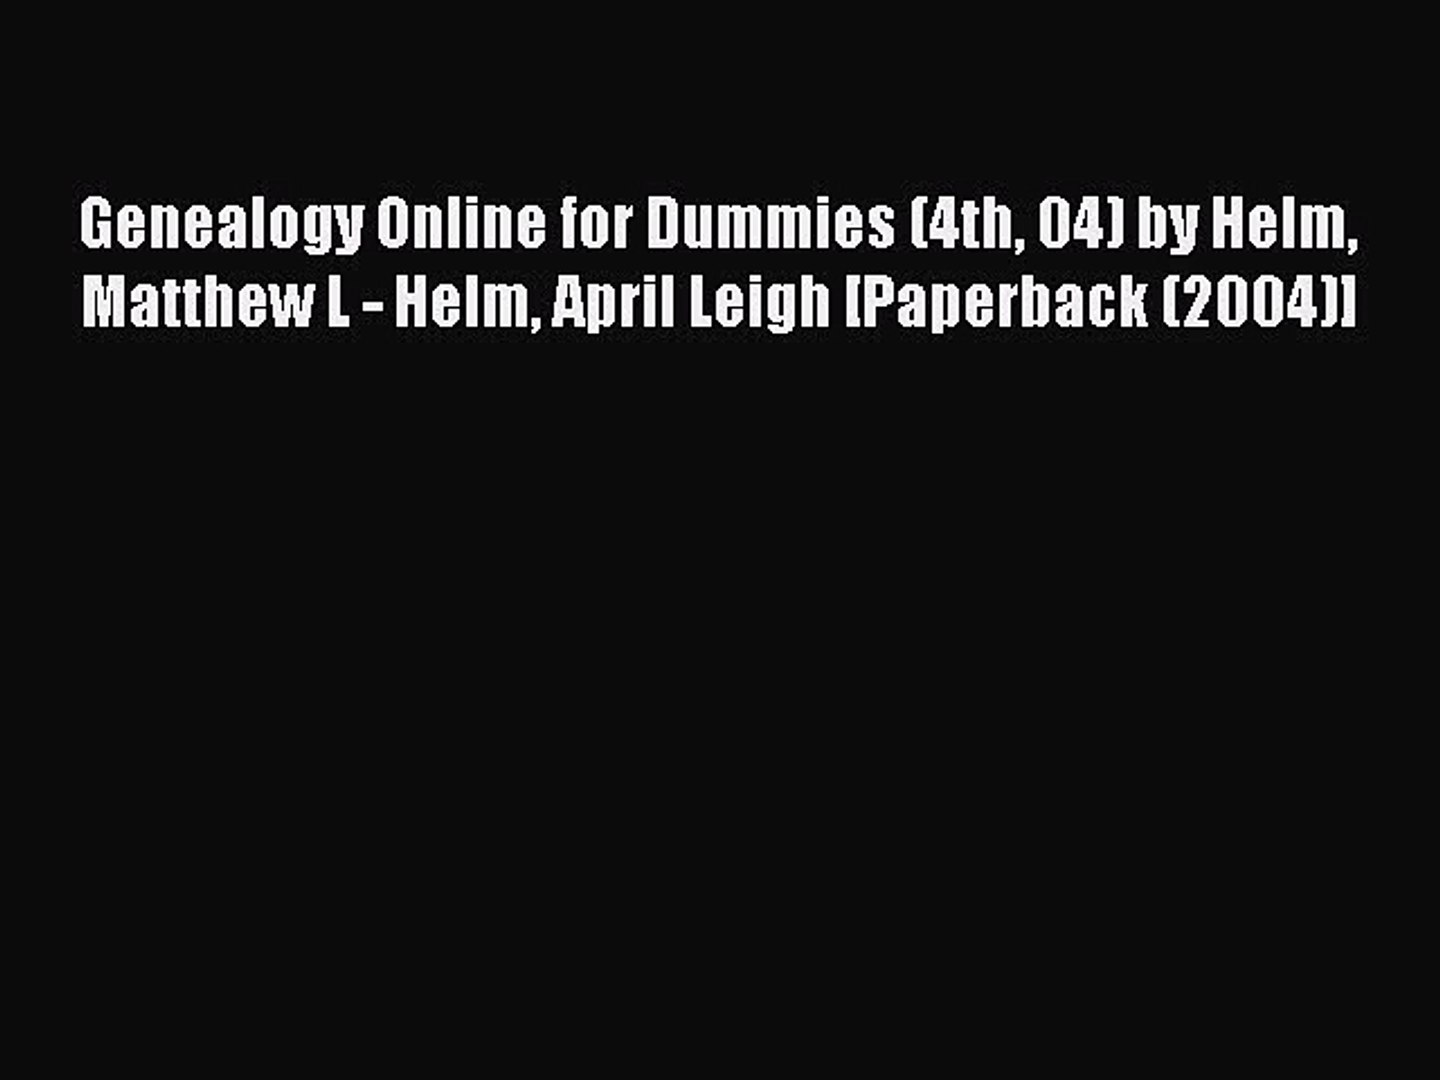 Read Genealogy Online for Dummies (4th 04) by Helm Matthew L - Helm April Leigh [Paperback